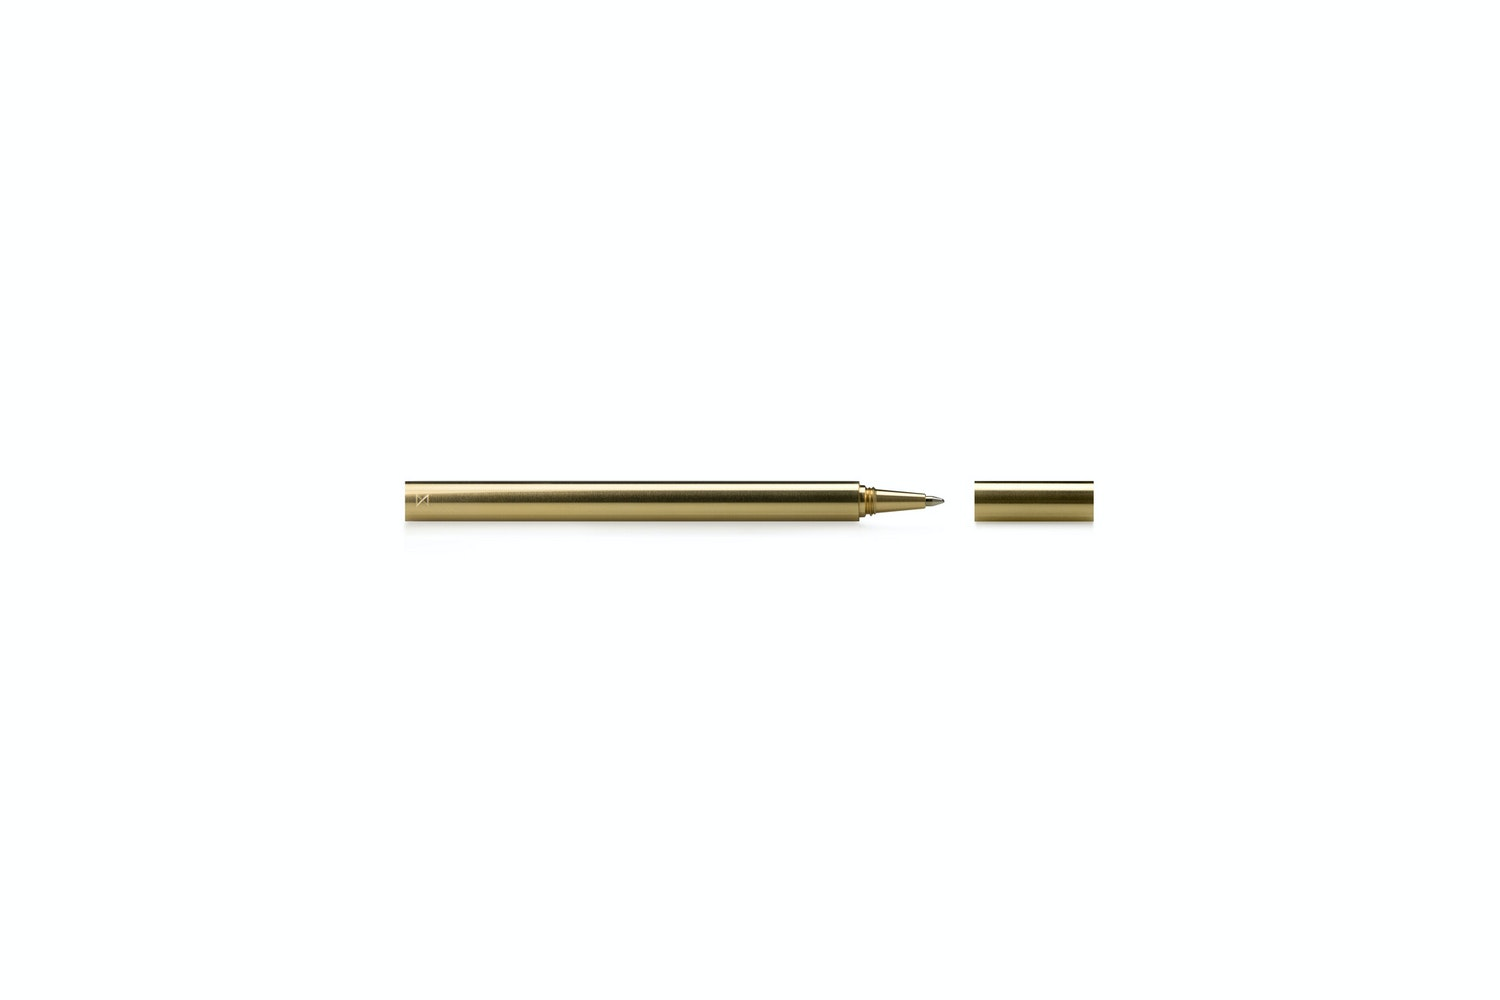 Travel Pen - Machined Brass by Minimalux